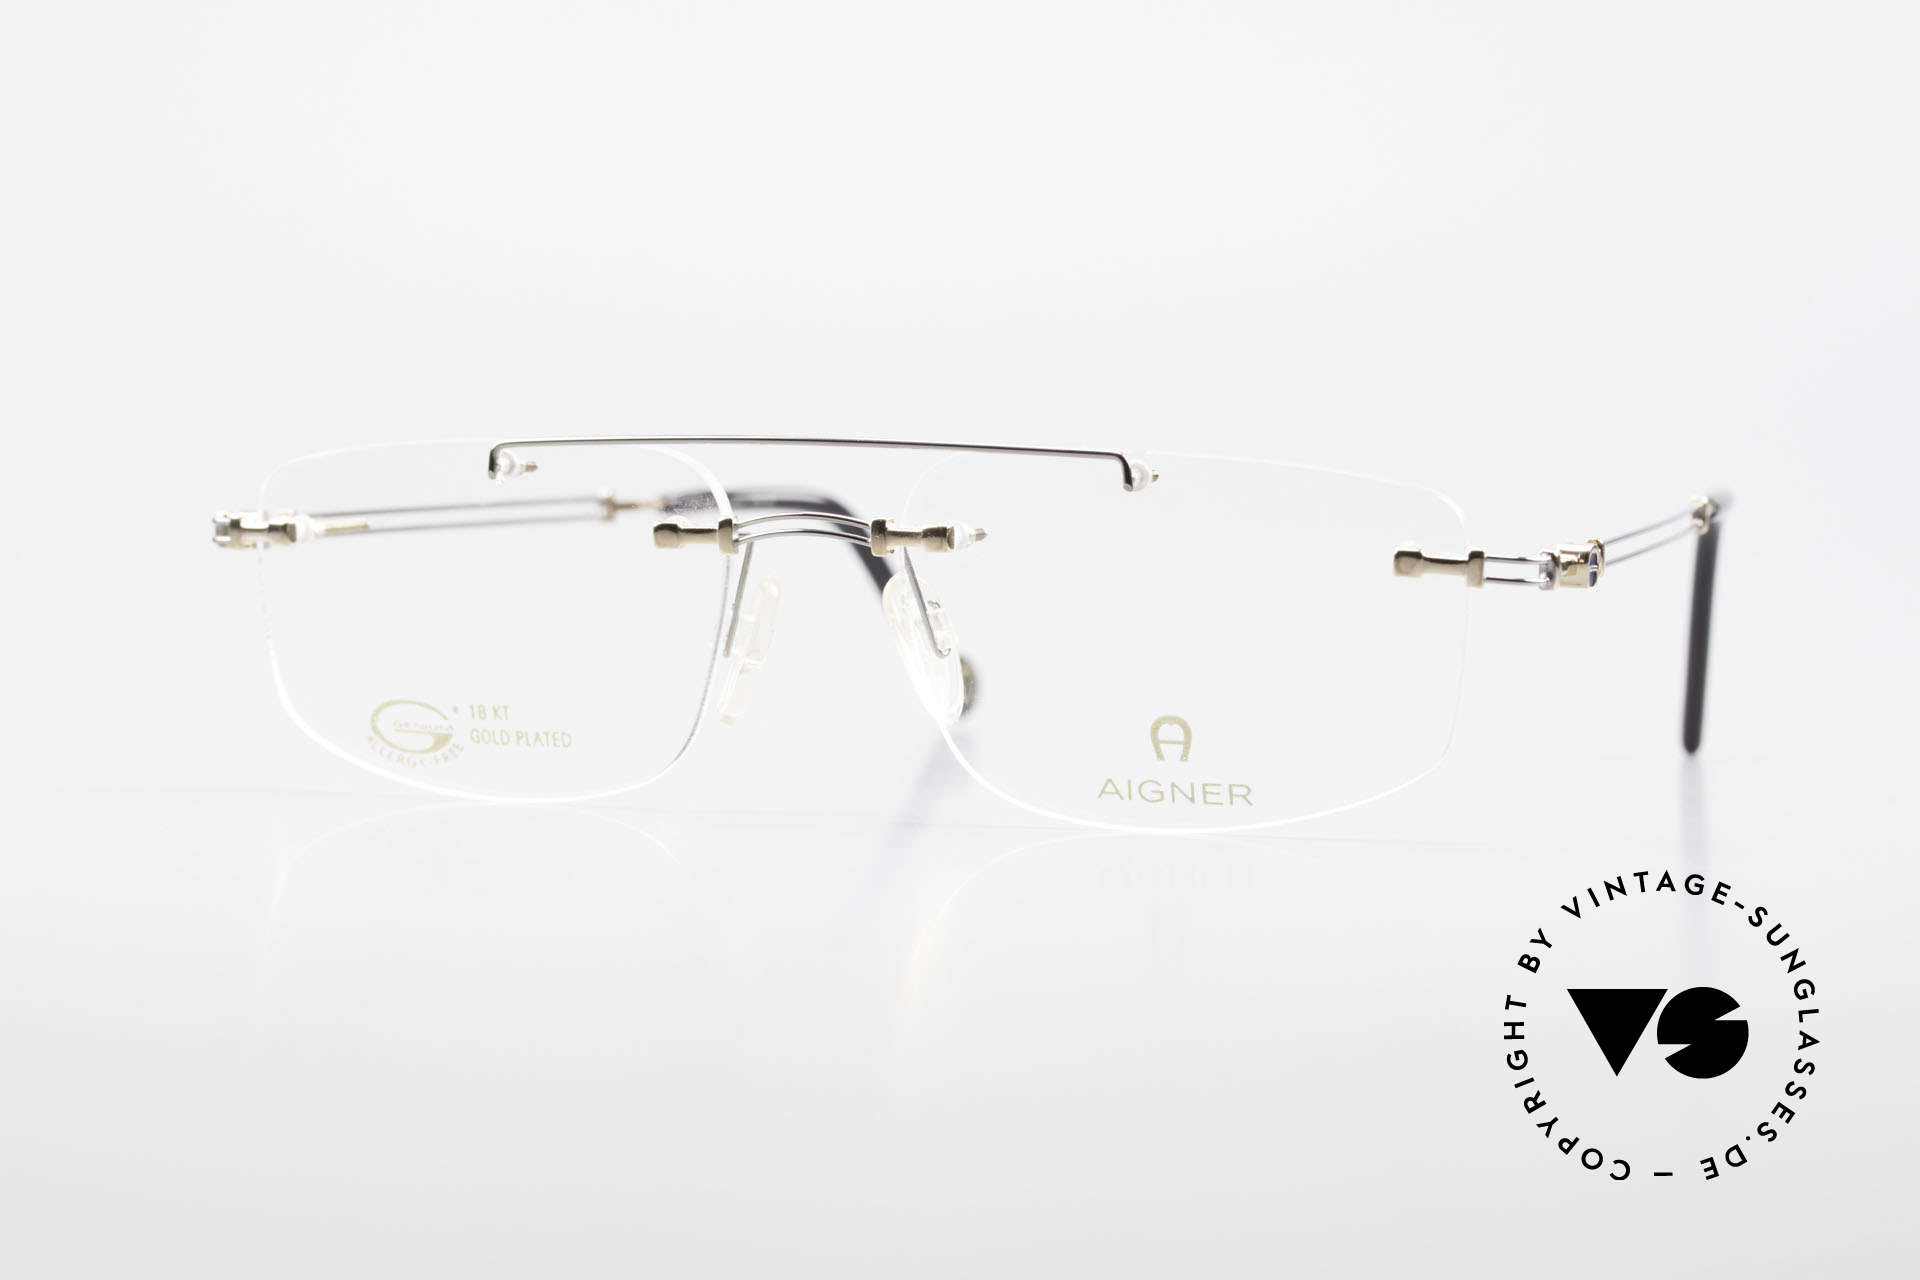 Aigner EA499 Rimless Vintage Glasses Men, rimless AIGNER vintage glasses, EA499, size 54/18, 140, Made for Men